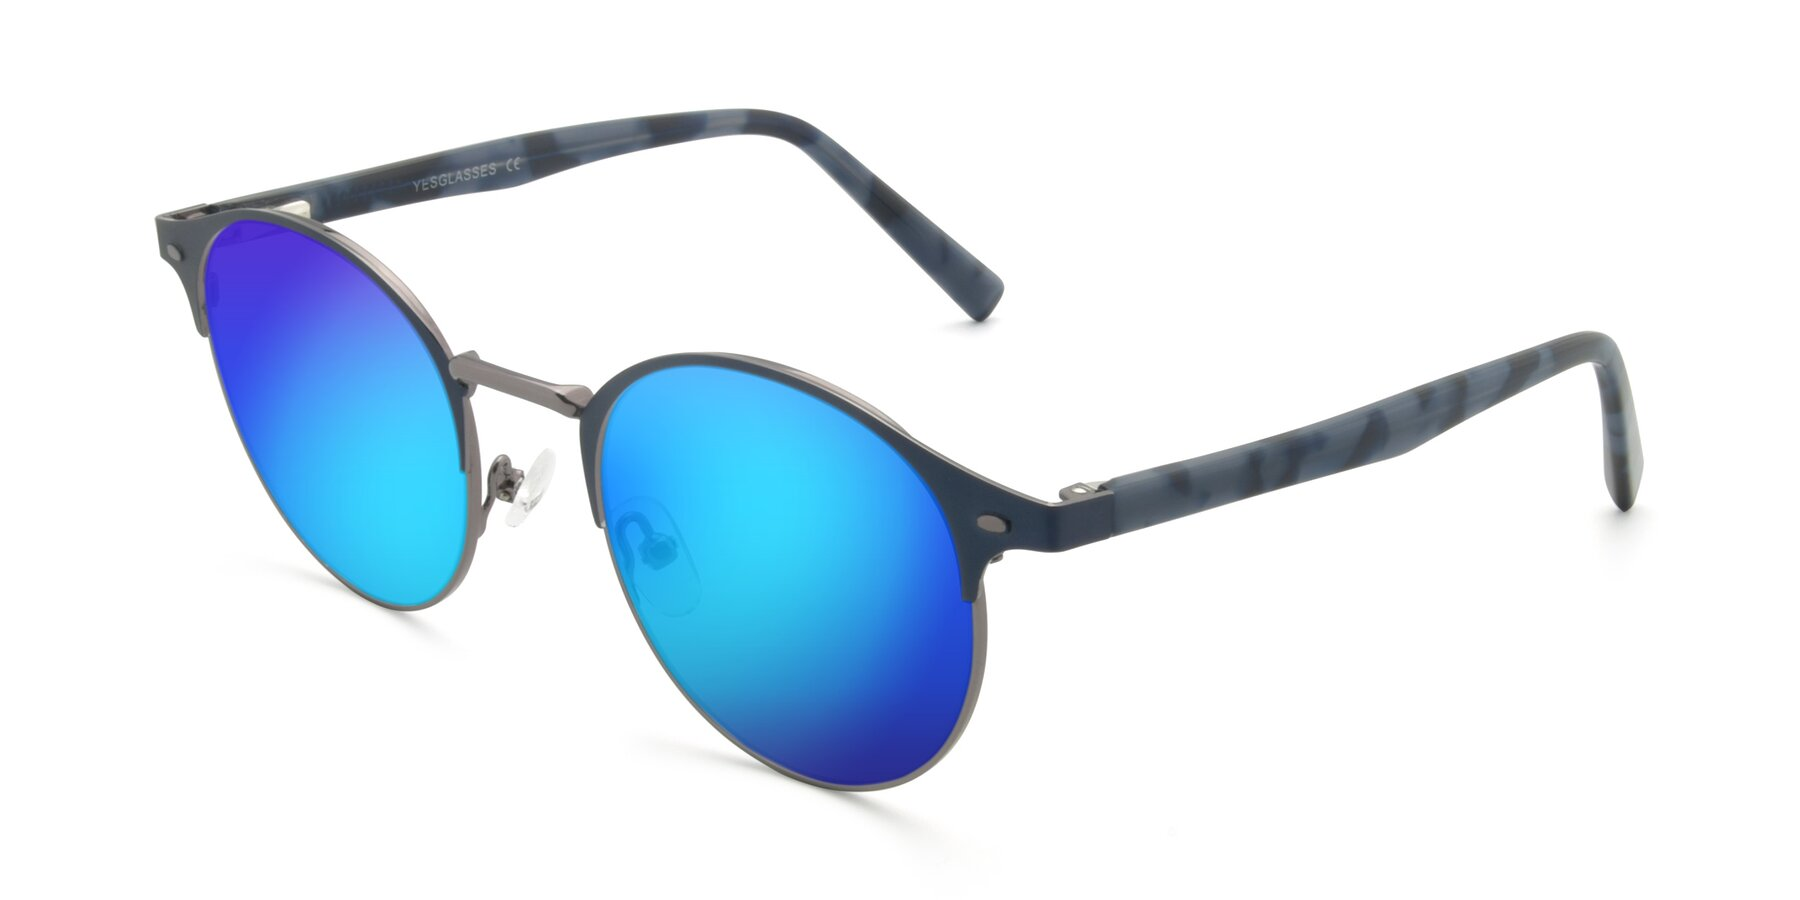 Angle of 9099 in Blue-Gunmetal with Blue Mirrored Lenses